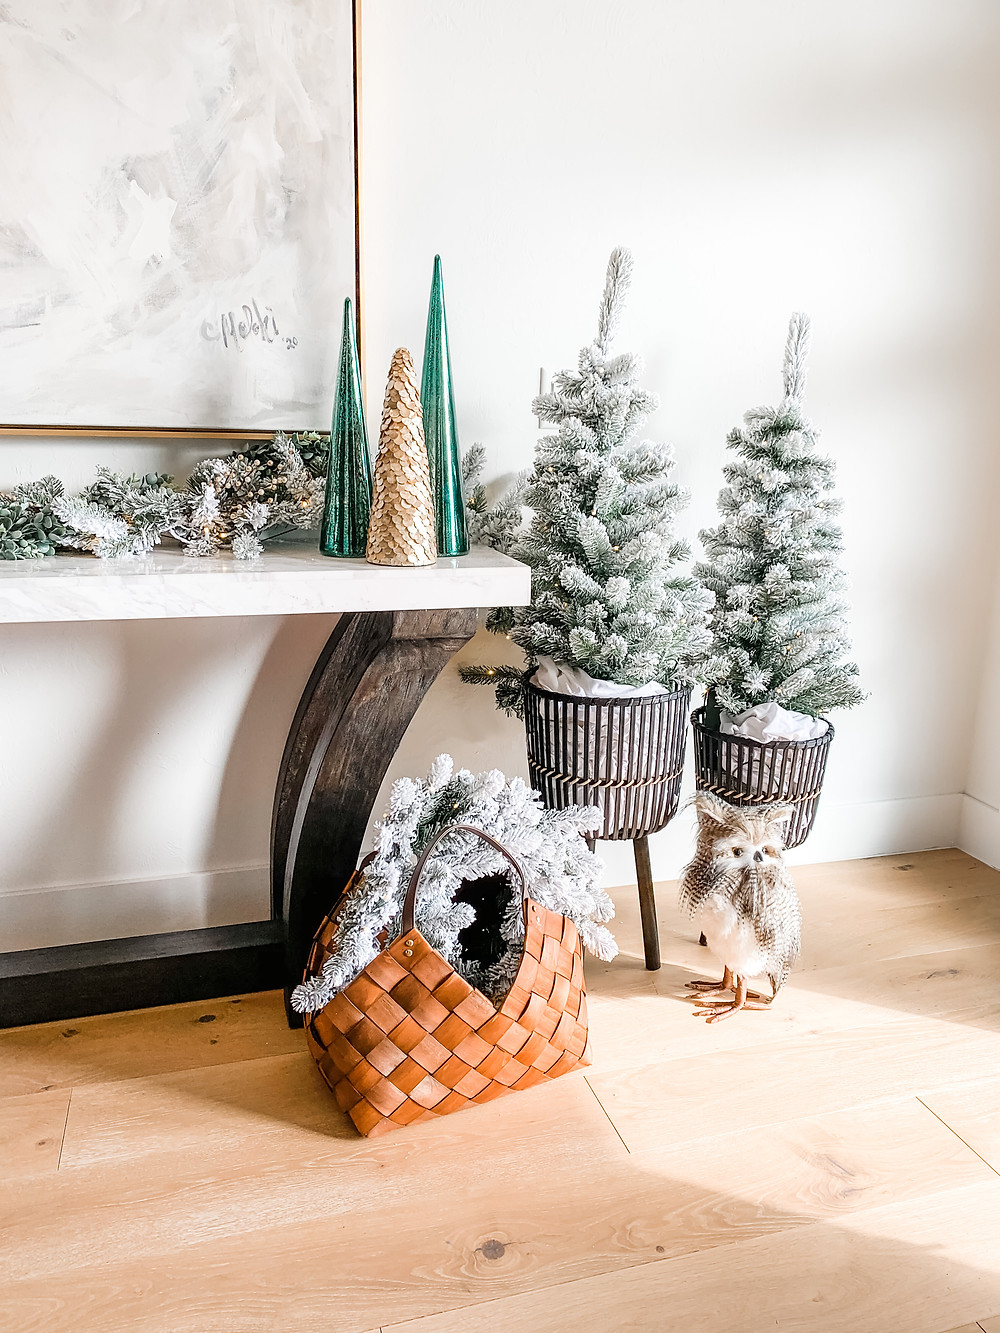 Modern Entryway Christmas Decor with Flocked Trees in Modern Black Plant Stands, Owl Decor and Flocked Pre Lit Wreath and Garland